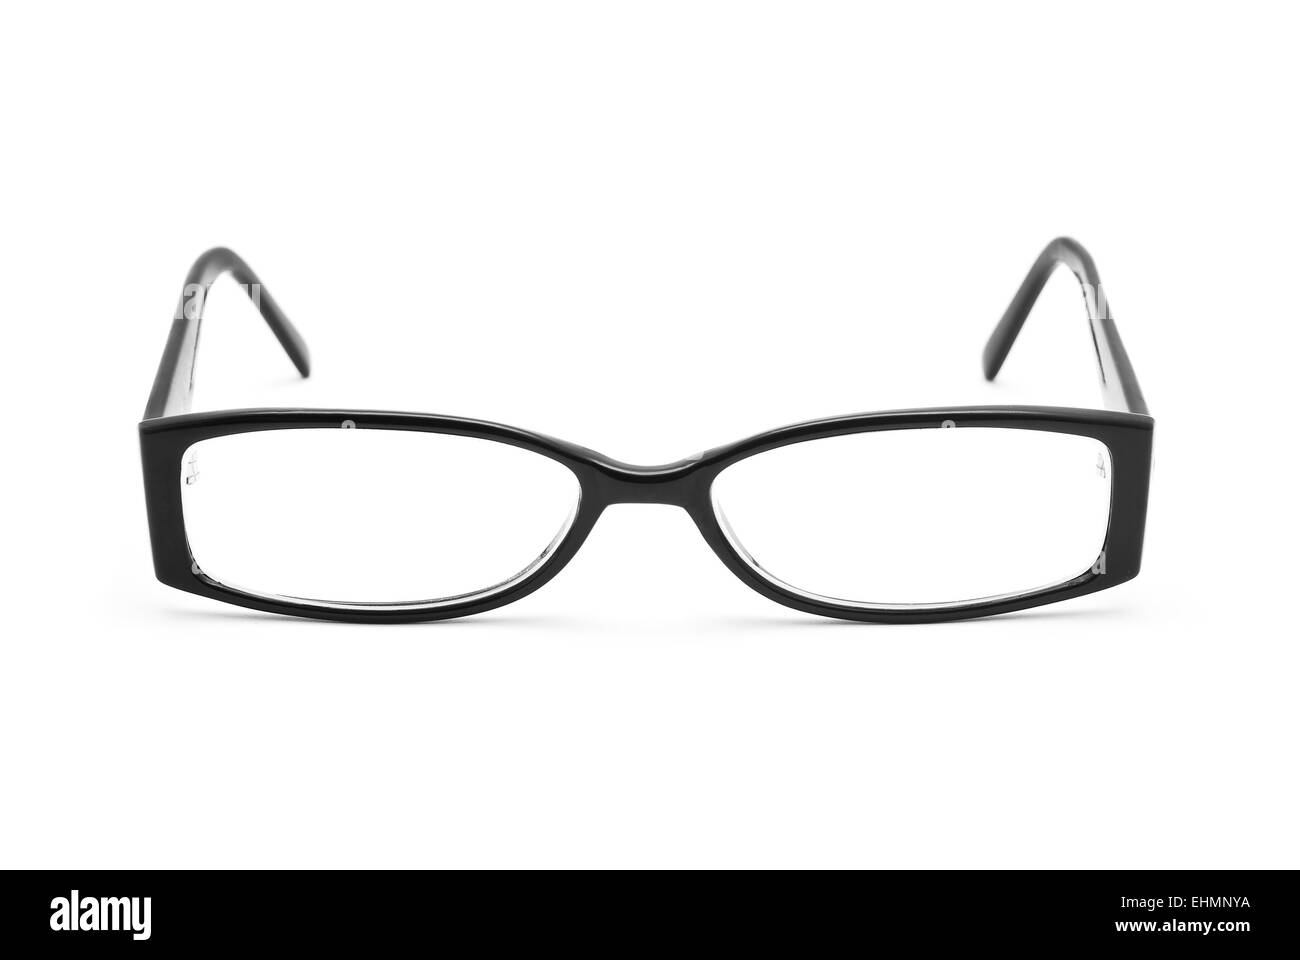 eyeglasses on white background - Stock Image